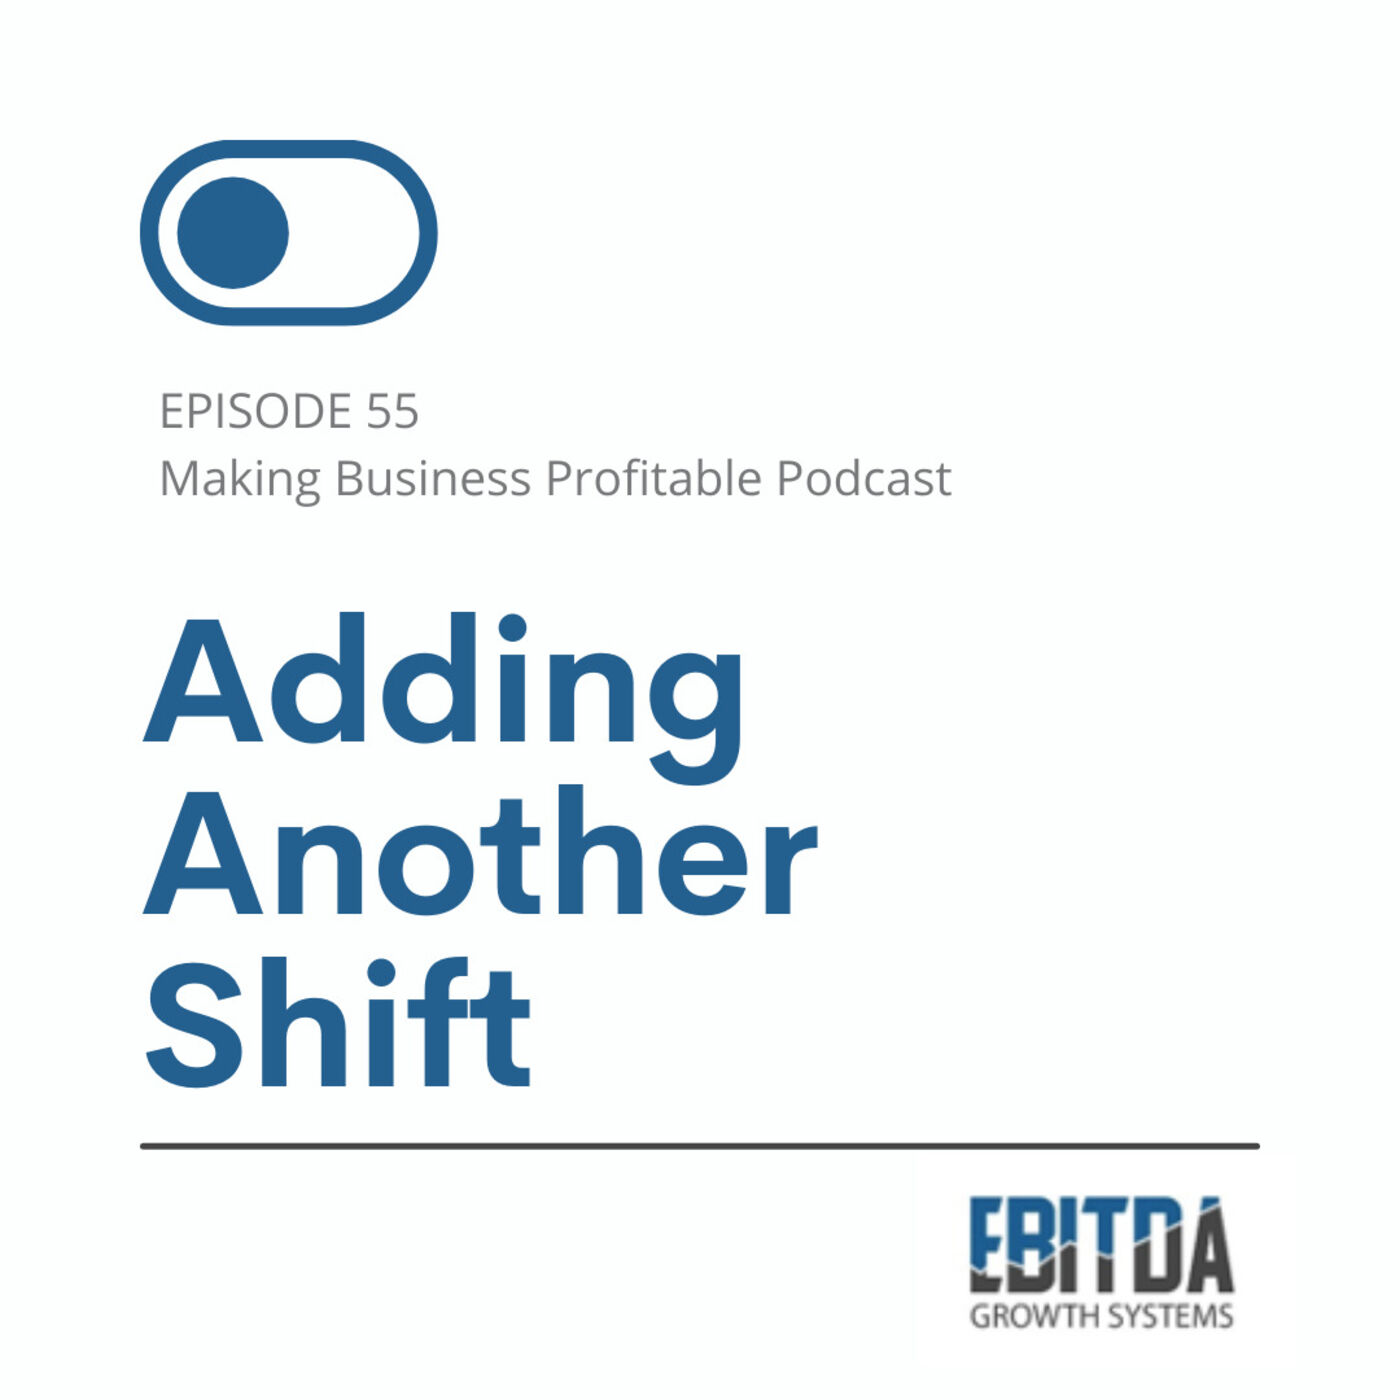 Episode 55 - Adding another Shift